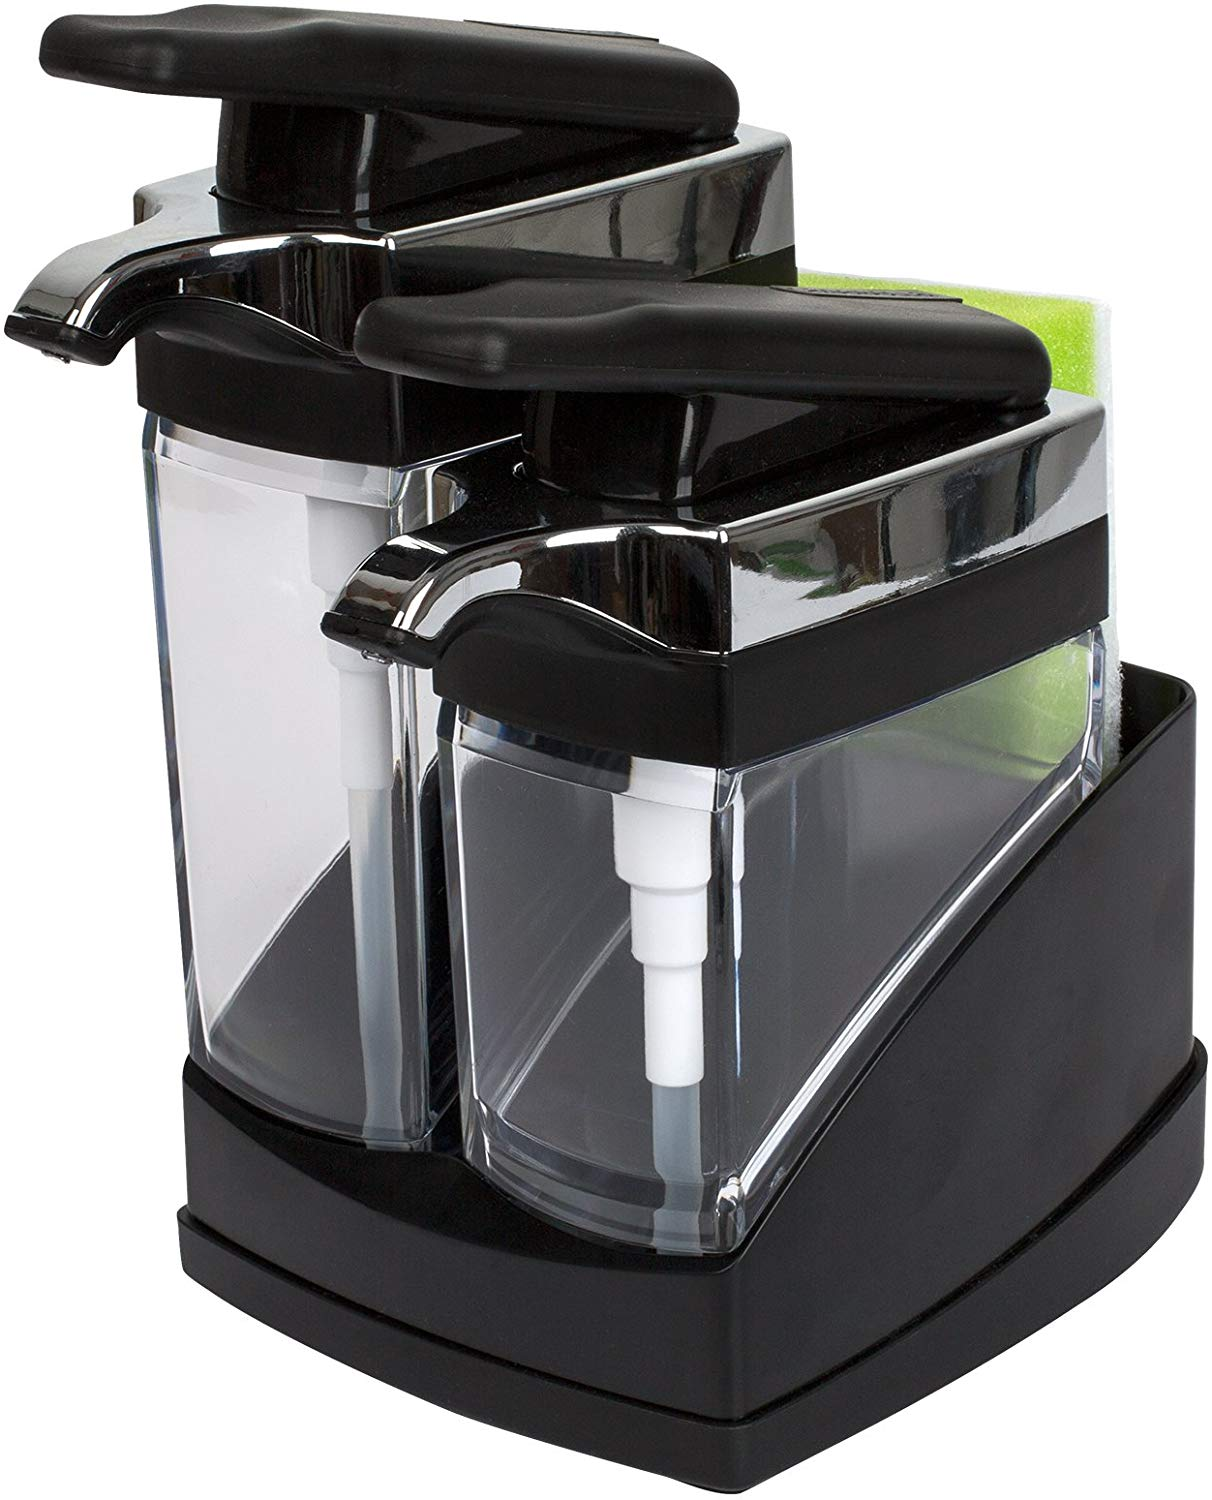 Casabella Duo Soup Dispenser & Sponge Storage